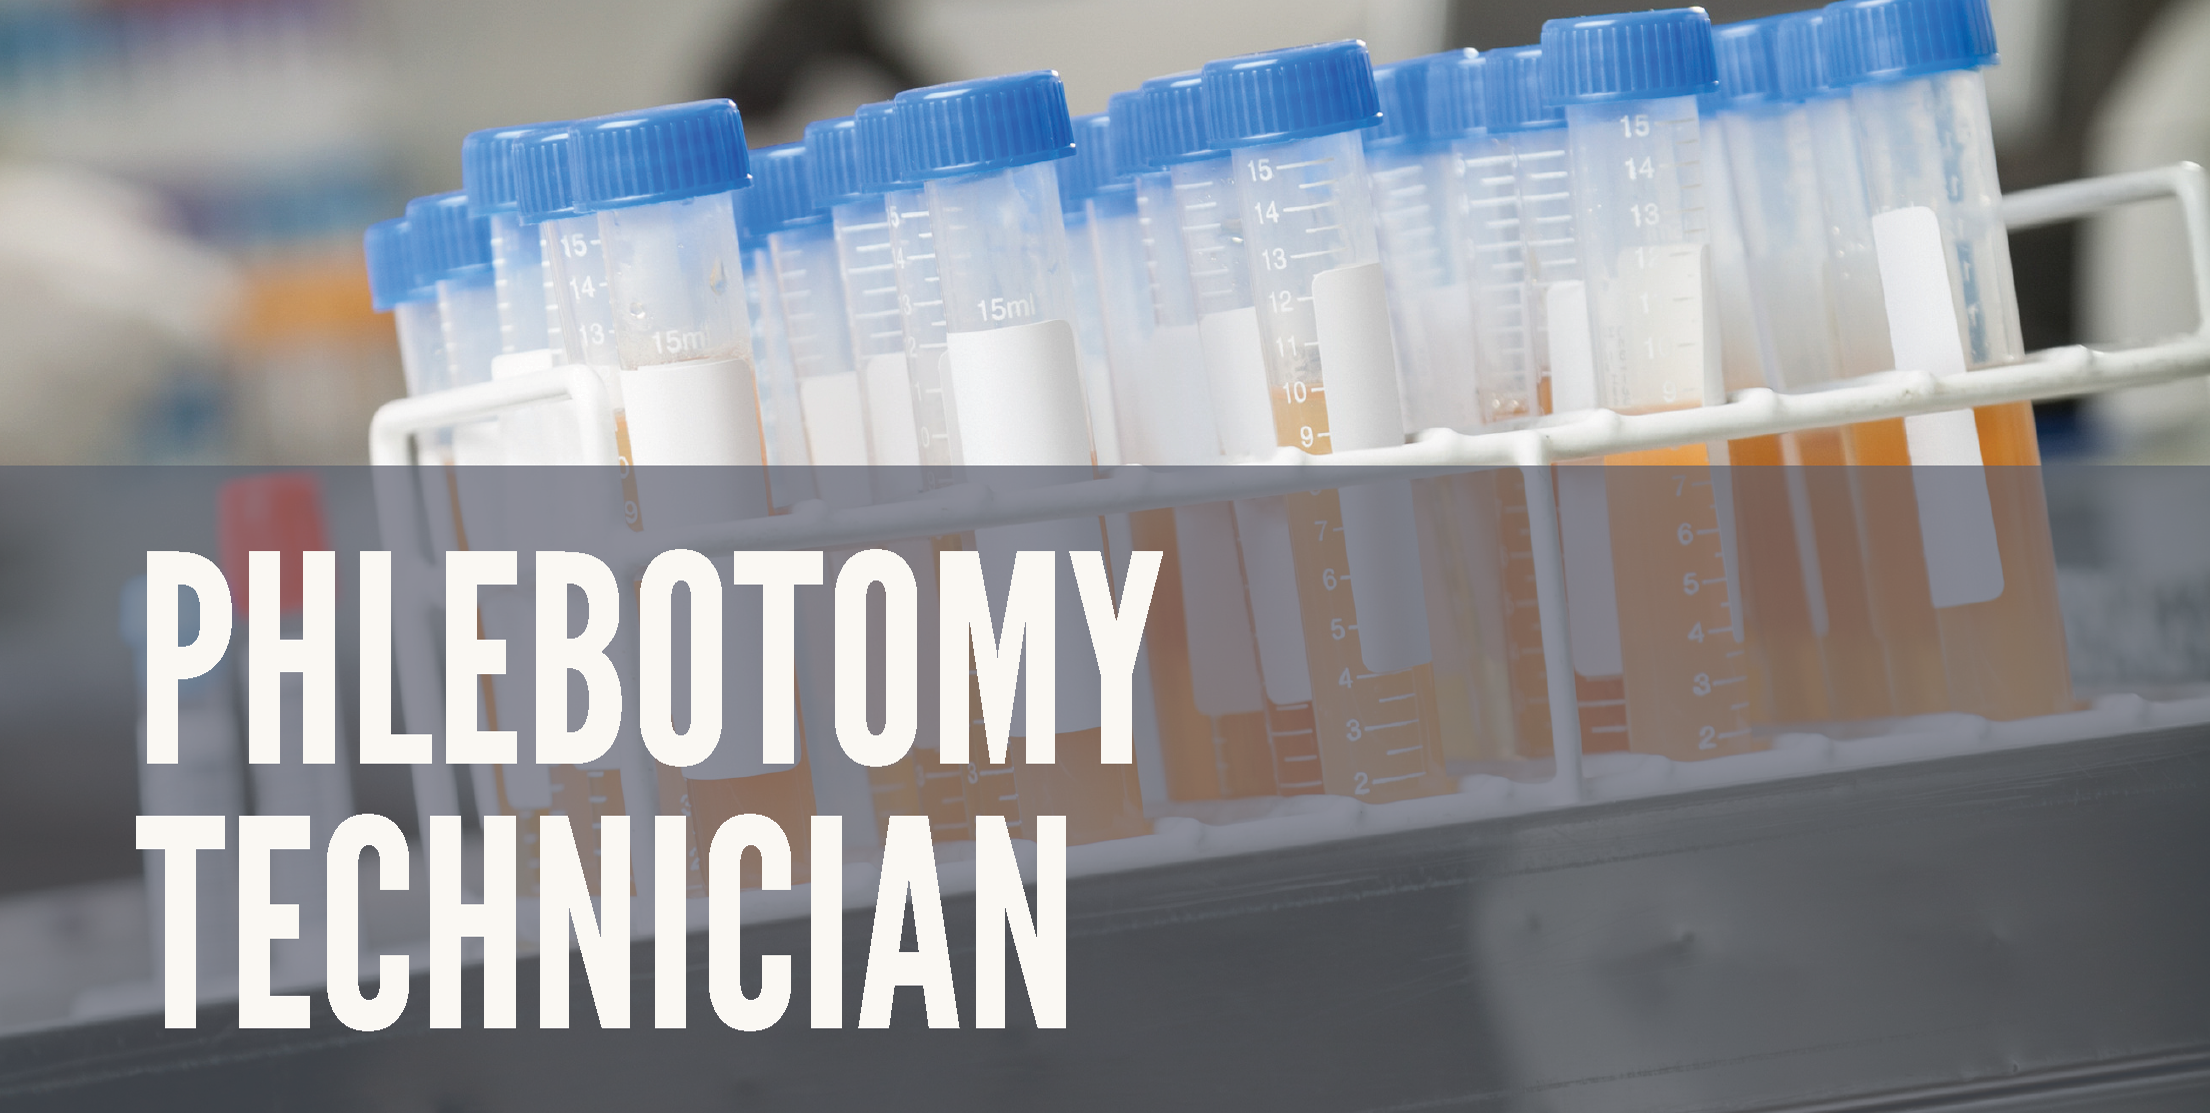 Phlebotomy Technician - Learn to collect blood and body fluid specimens used in throat cultures, urinalysis and stool cultures and prepare samples for testing in a lab. Gain an overview of the anatomy and physiology of the various systems that require specimen collection, processing and handling of specimens and laboratory operations. Successful completion of Venipuncture and Specimen Collection Techniques and Venipuncture and Specimen Collection Clinical is necessary to meet the eligibility requirements to sit for the national certification exam with National Health career Association. Subjects discussed in this course include: Medical terminology, basic anatomy of the cardiovascular system, venipuncture & specimen collection techniques. Course Duration: 7 weeks